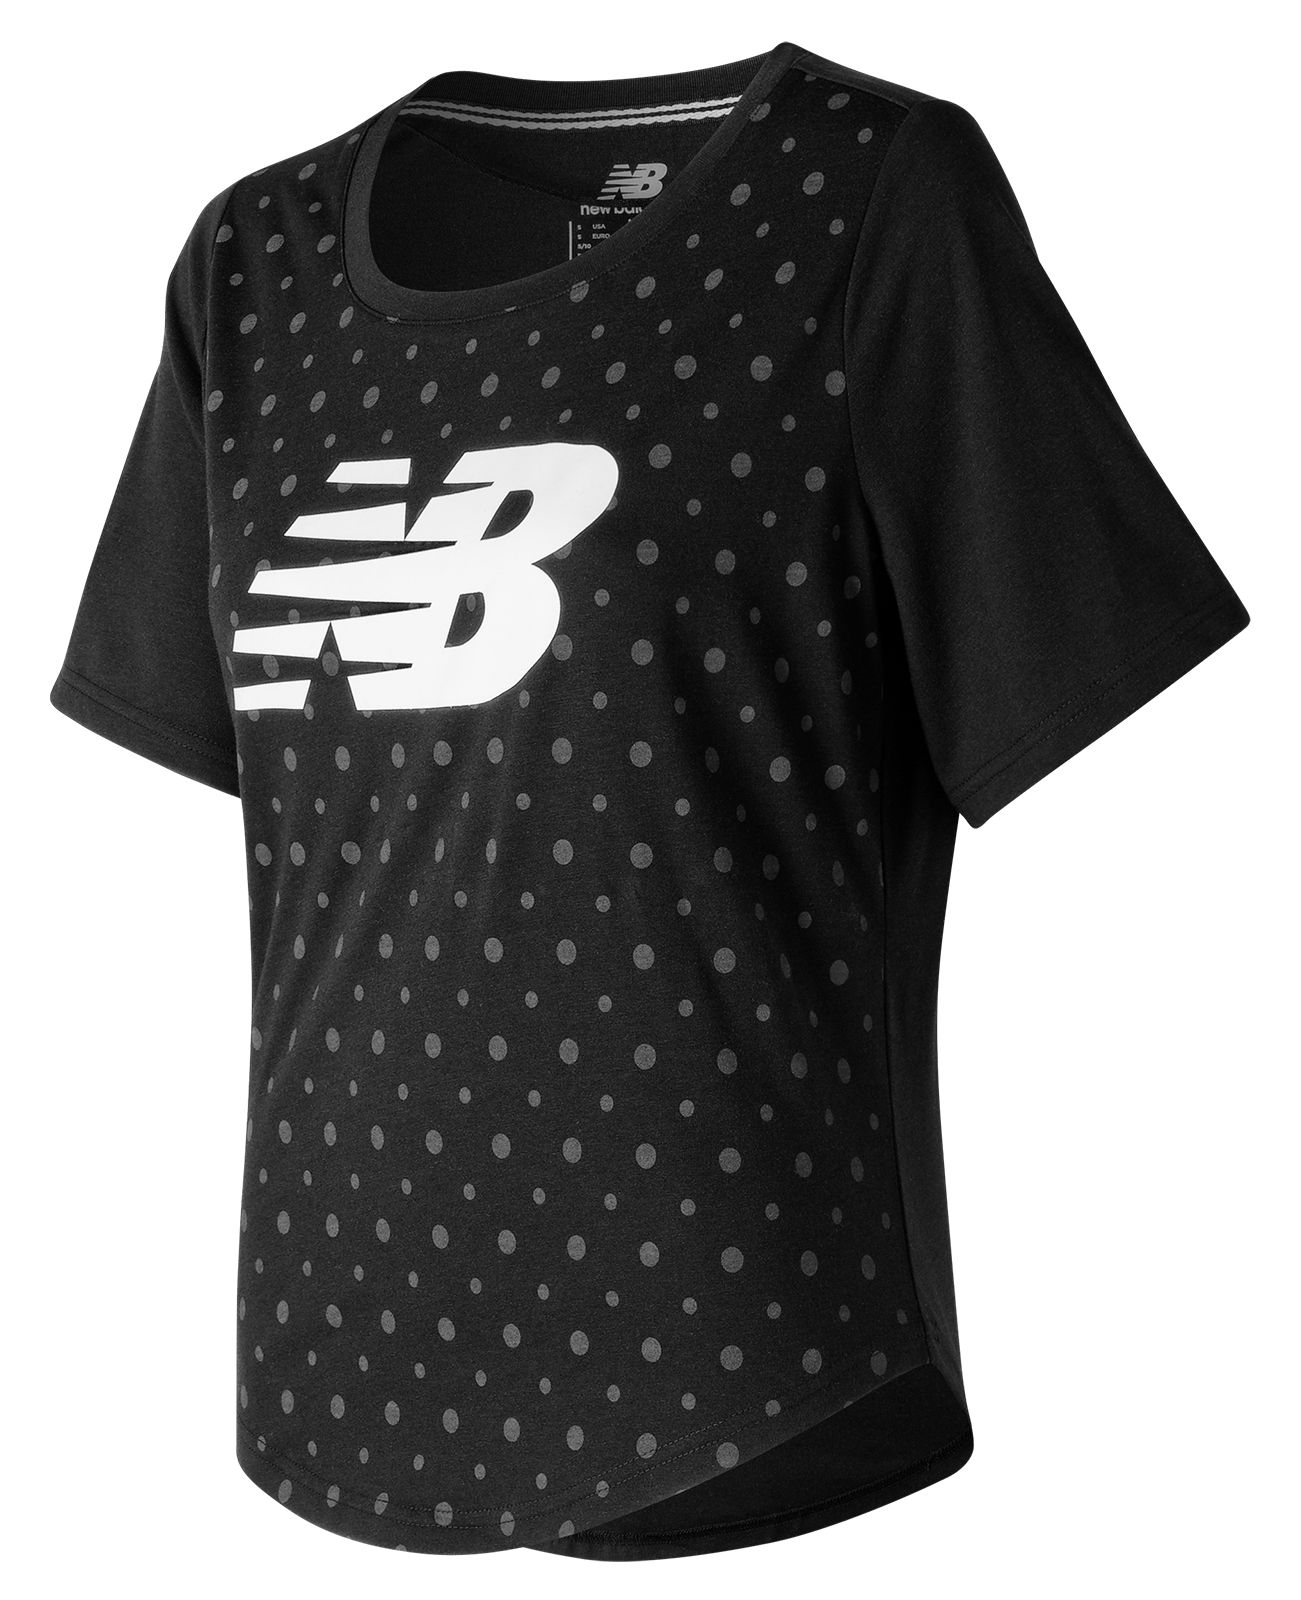 New Balance : Womens Trackster SS Top : Women's Casual : WT71645BK